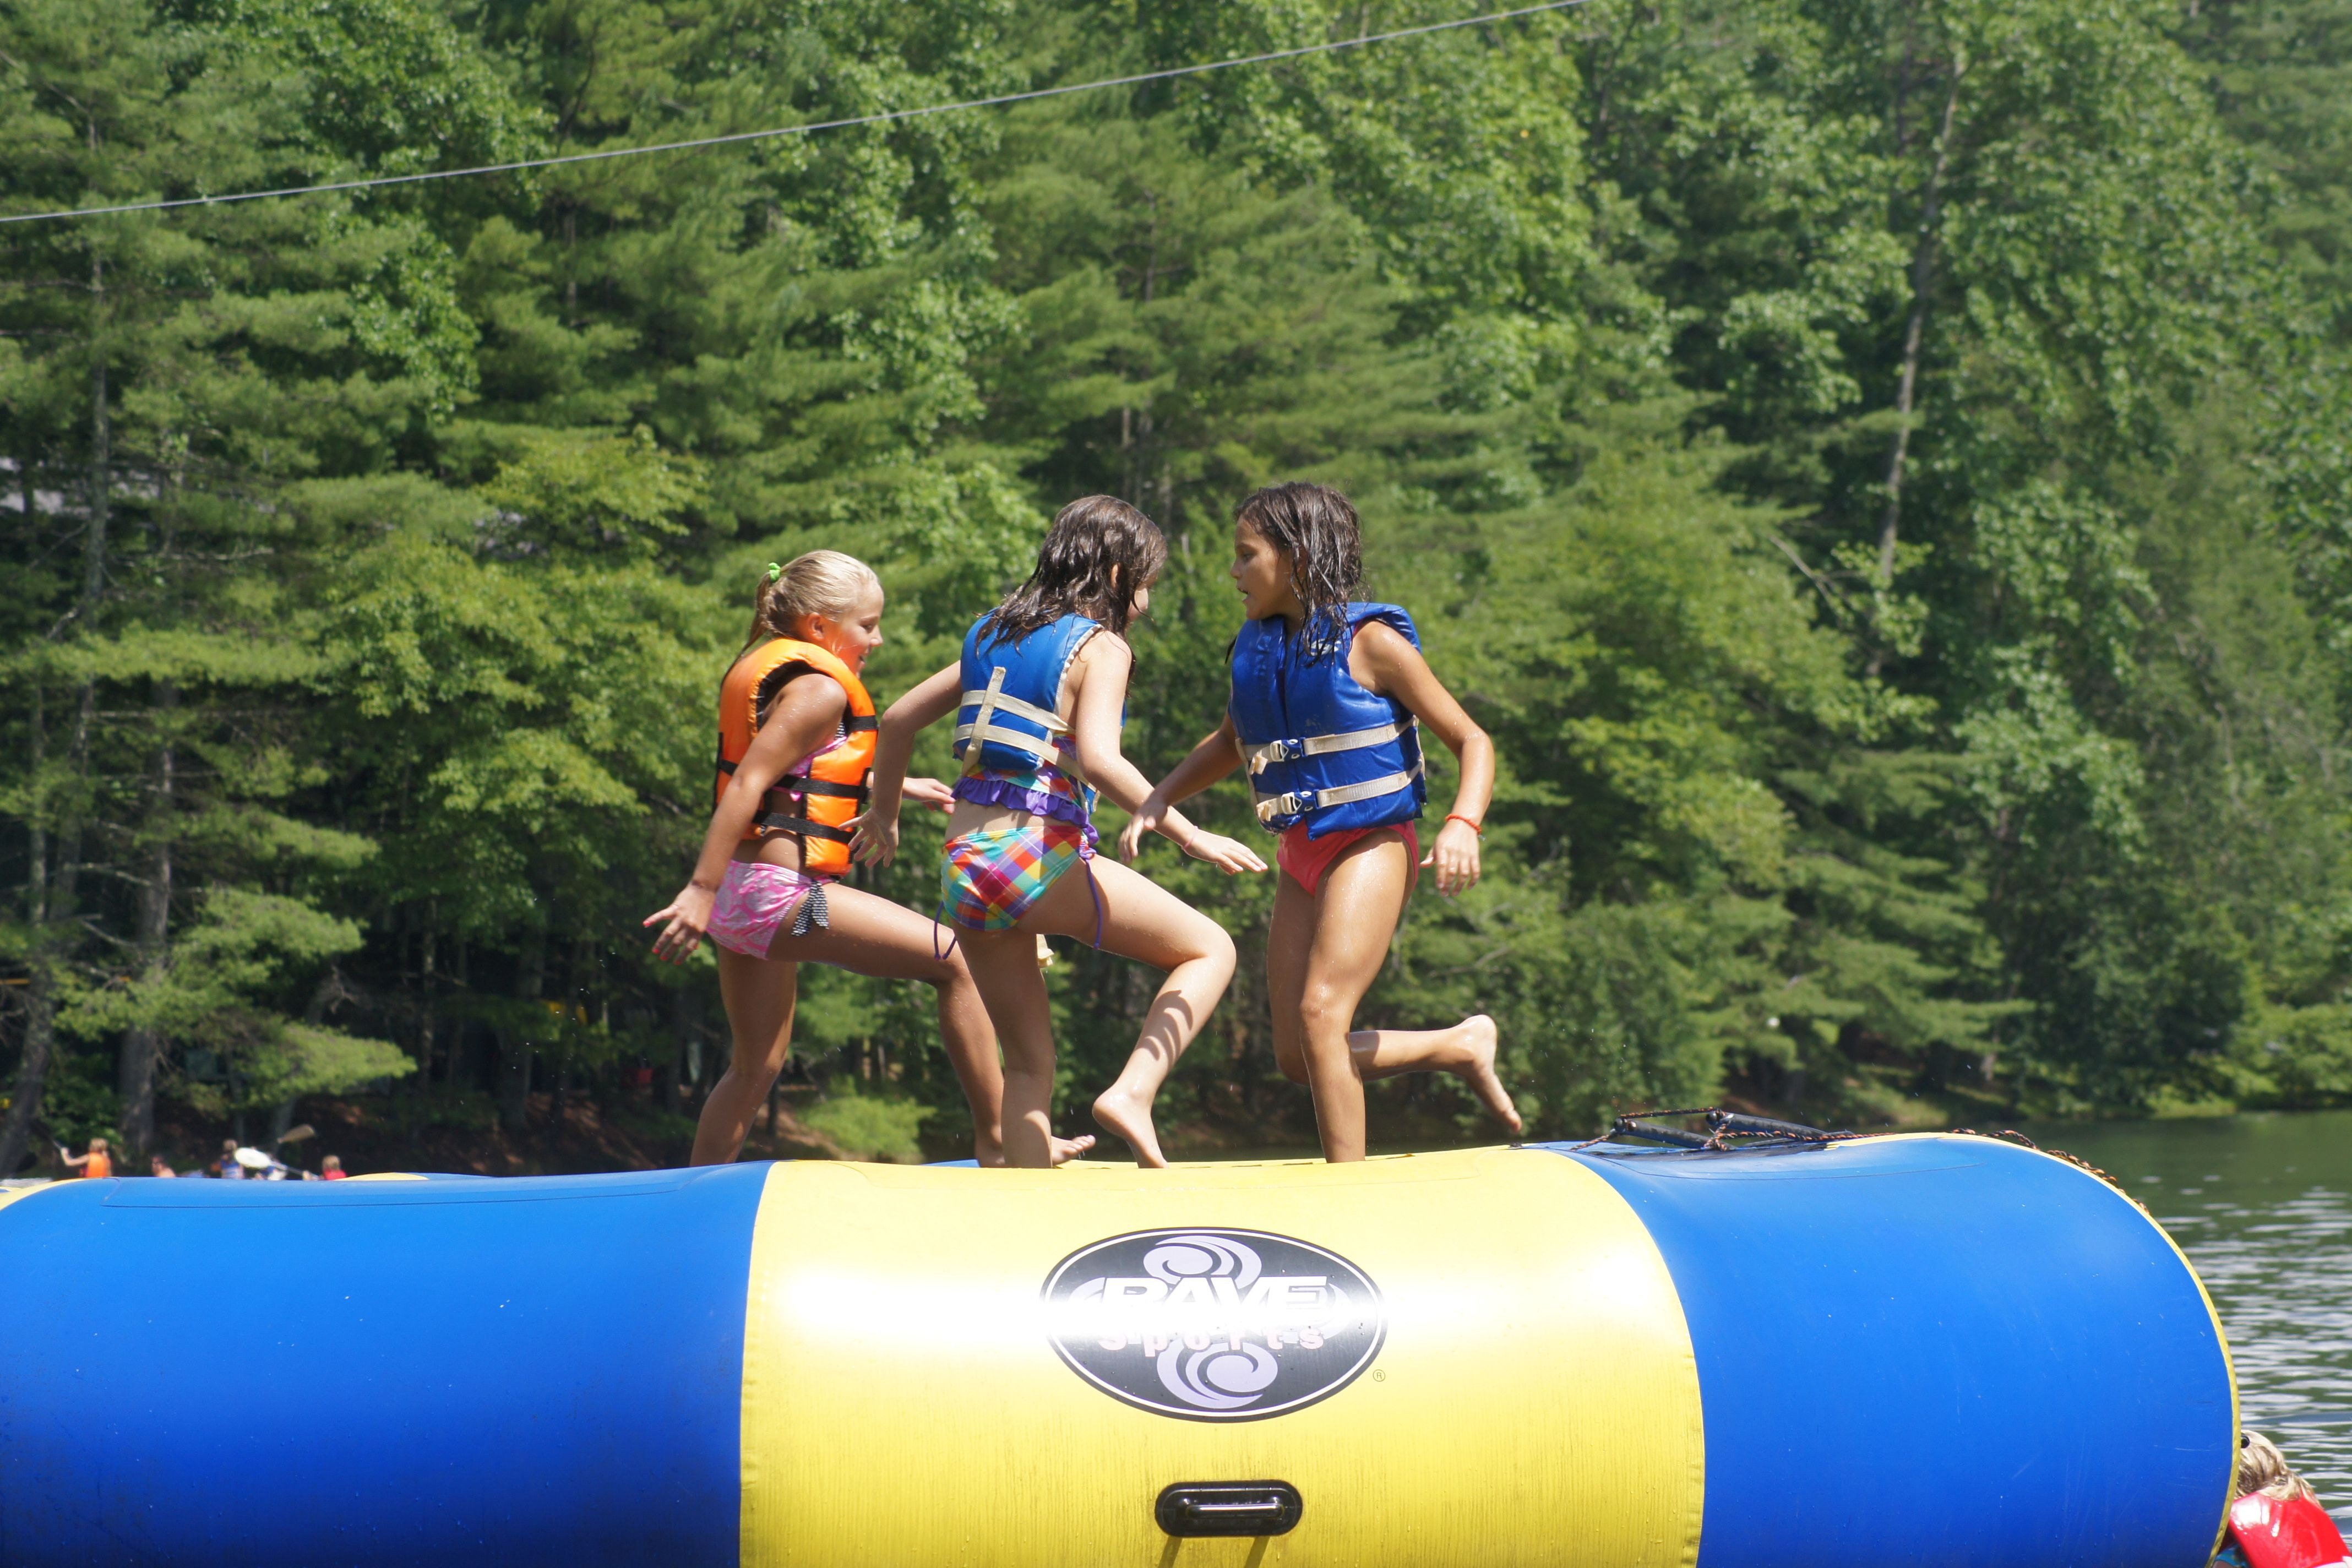 Jump, jump on it! Campy, Camping, Sports